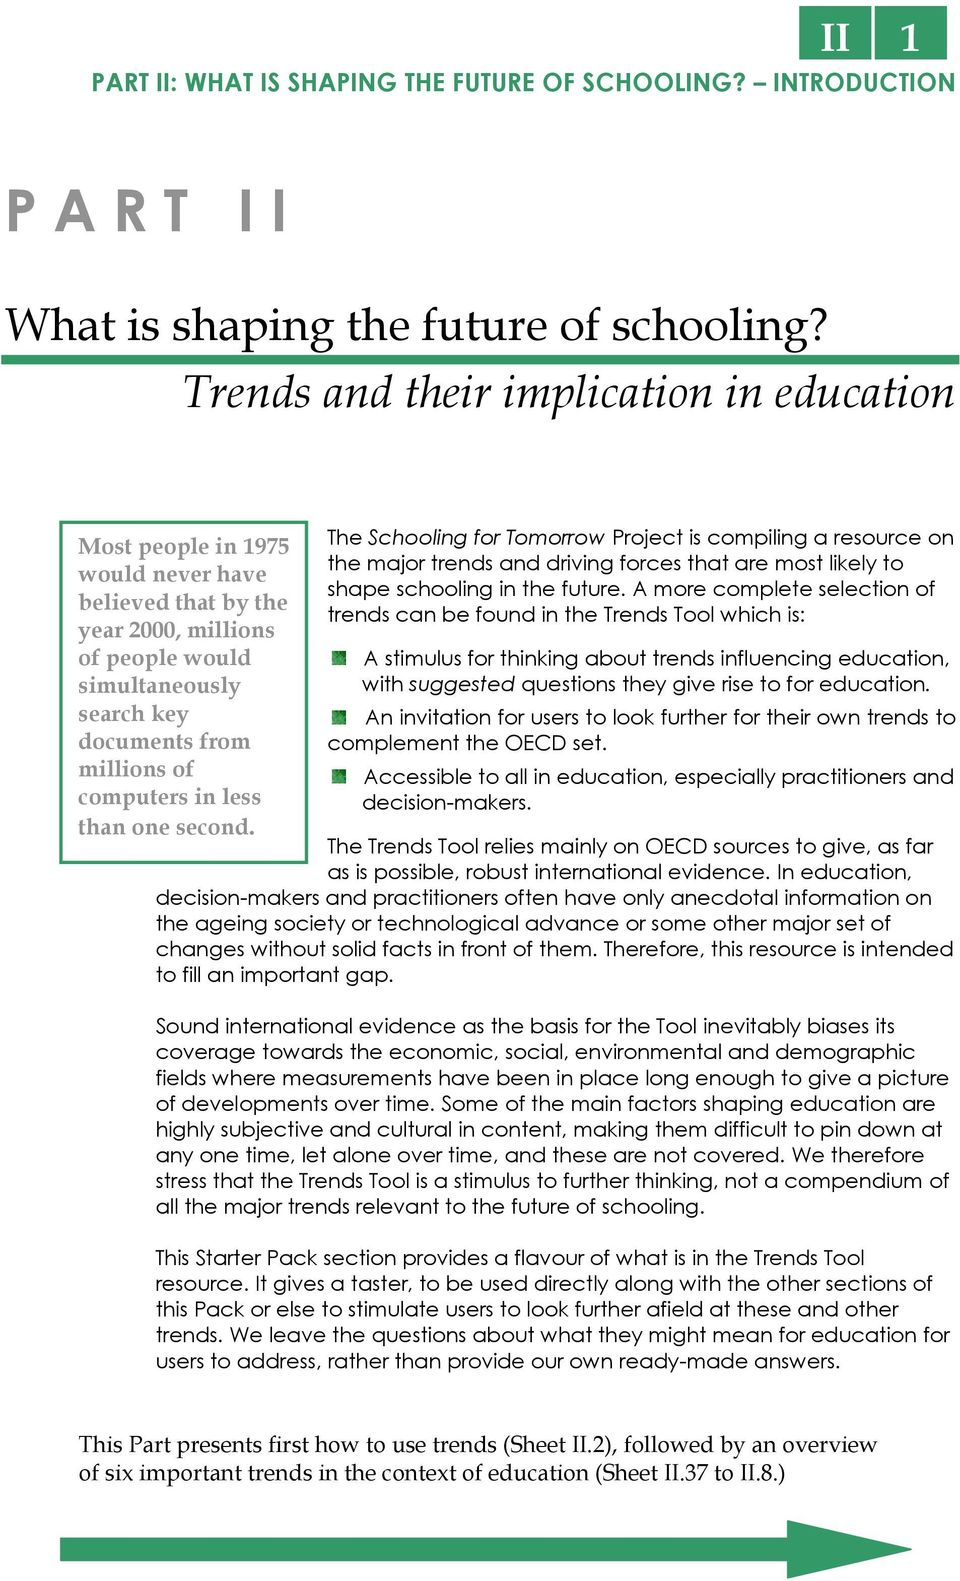 in less than one second. The Schooling for Tomorrow Project is compiling a resource on the major trends and driving forces that are most likely to shape schooling in the future.